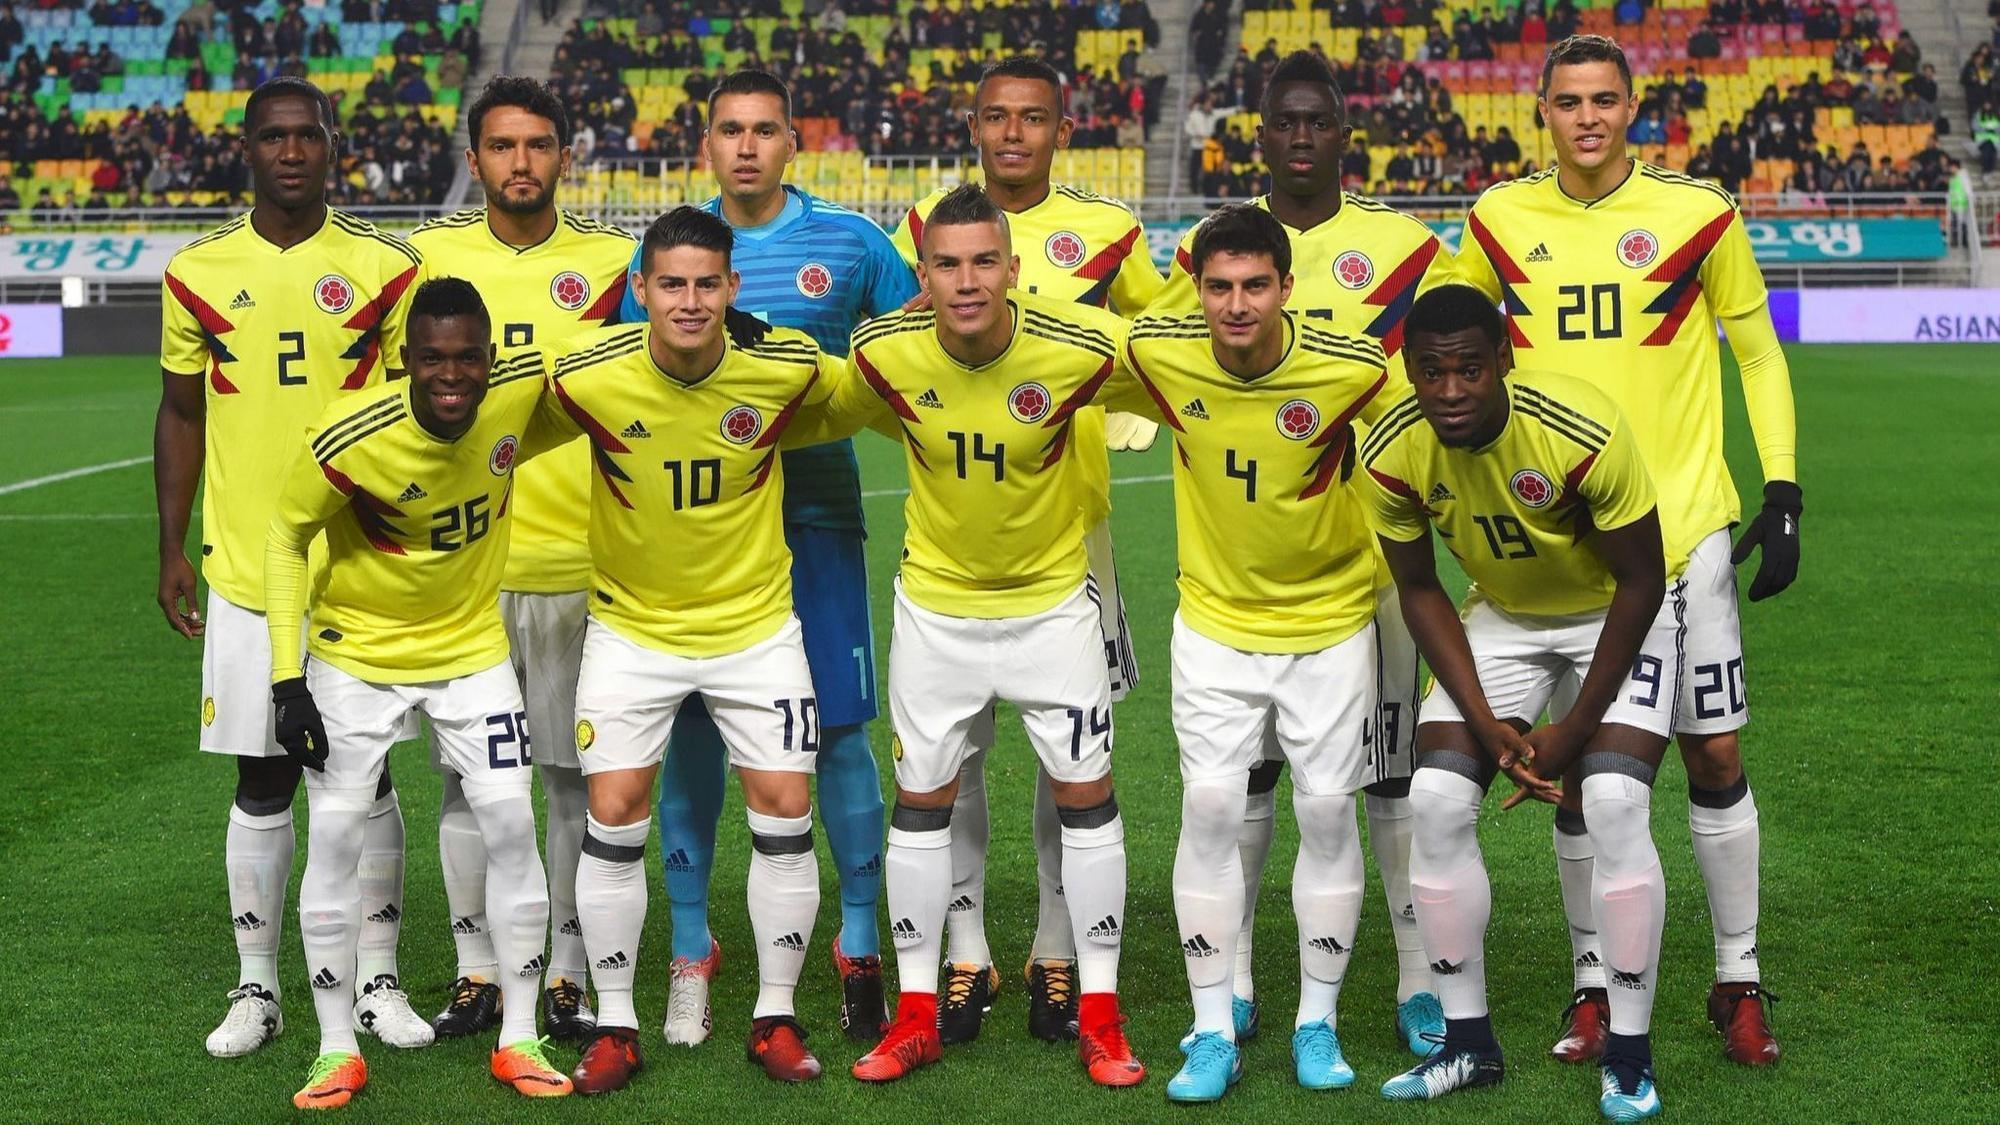 France squad  Colombia for headline Falcao Rodriguez,